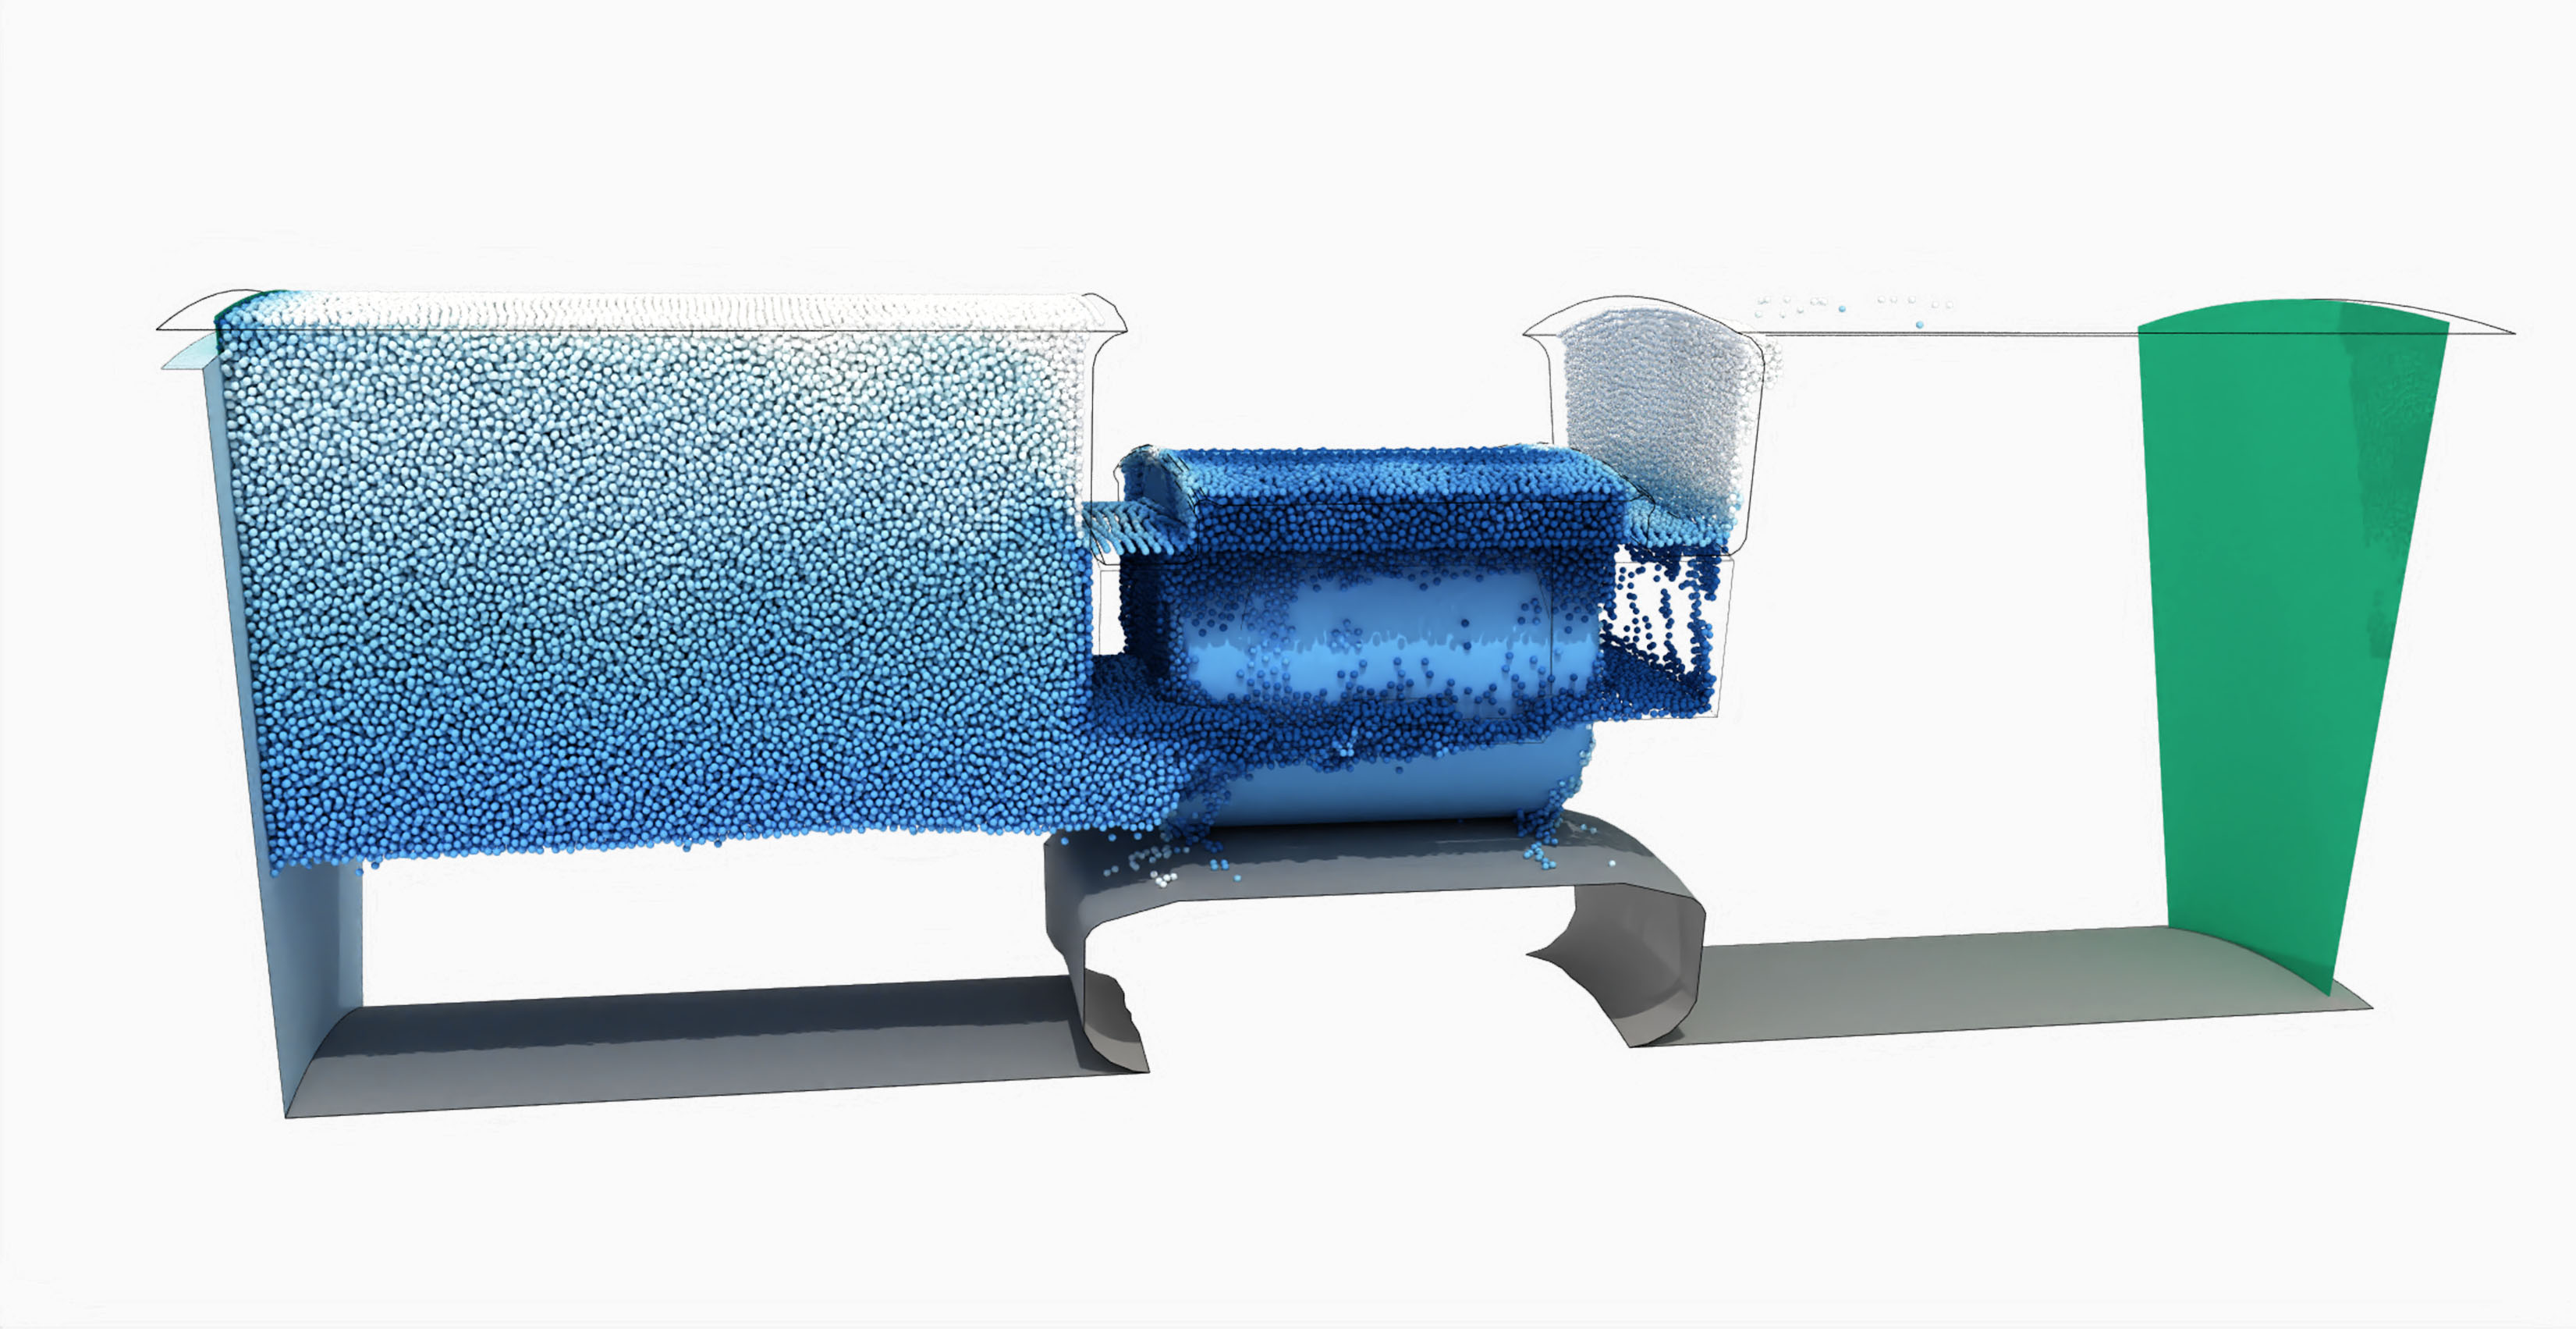 SPH simulation of machine with roller bearing showing particles and their velocities